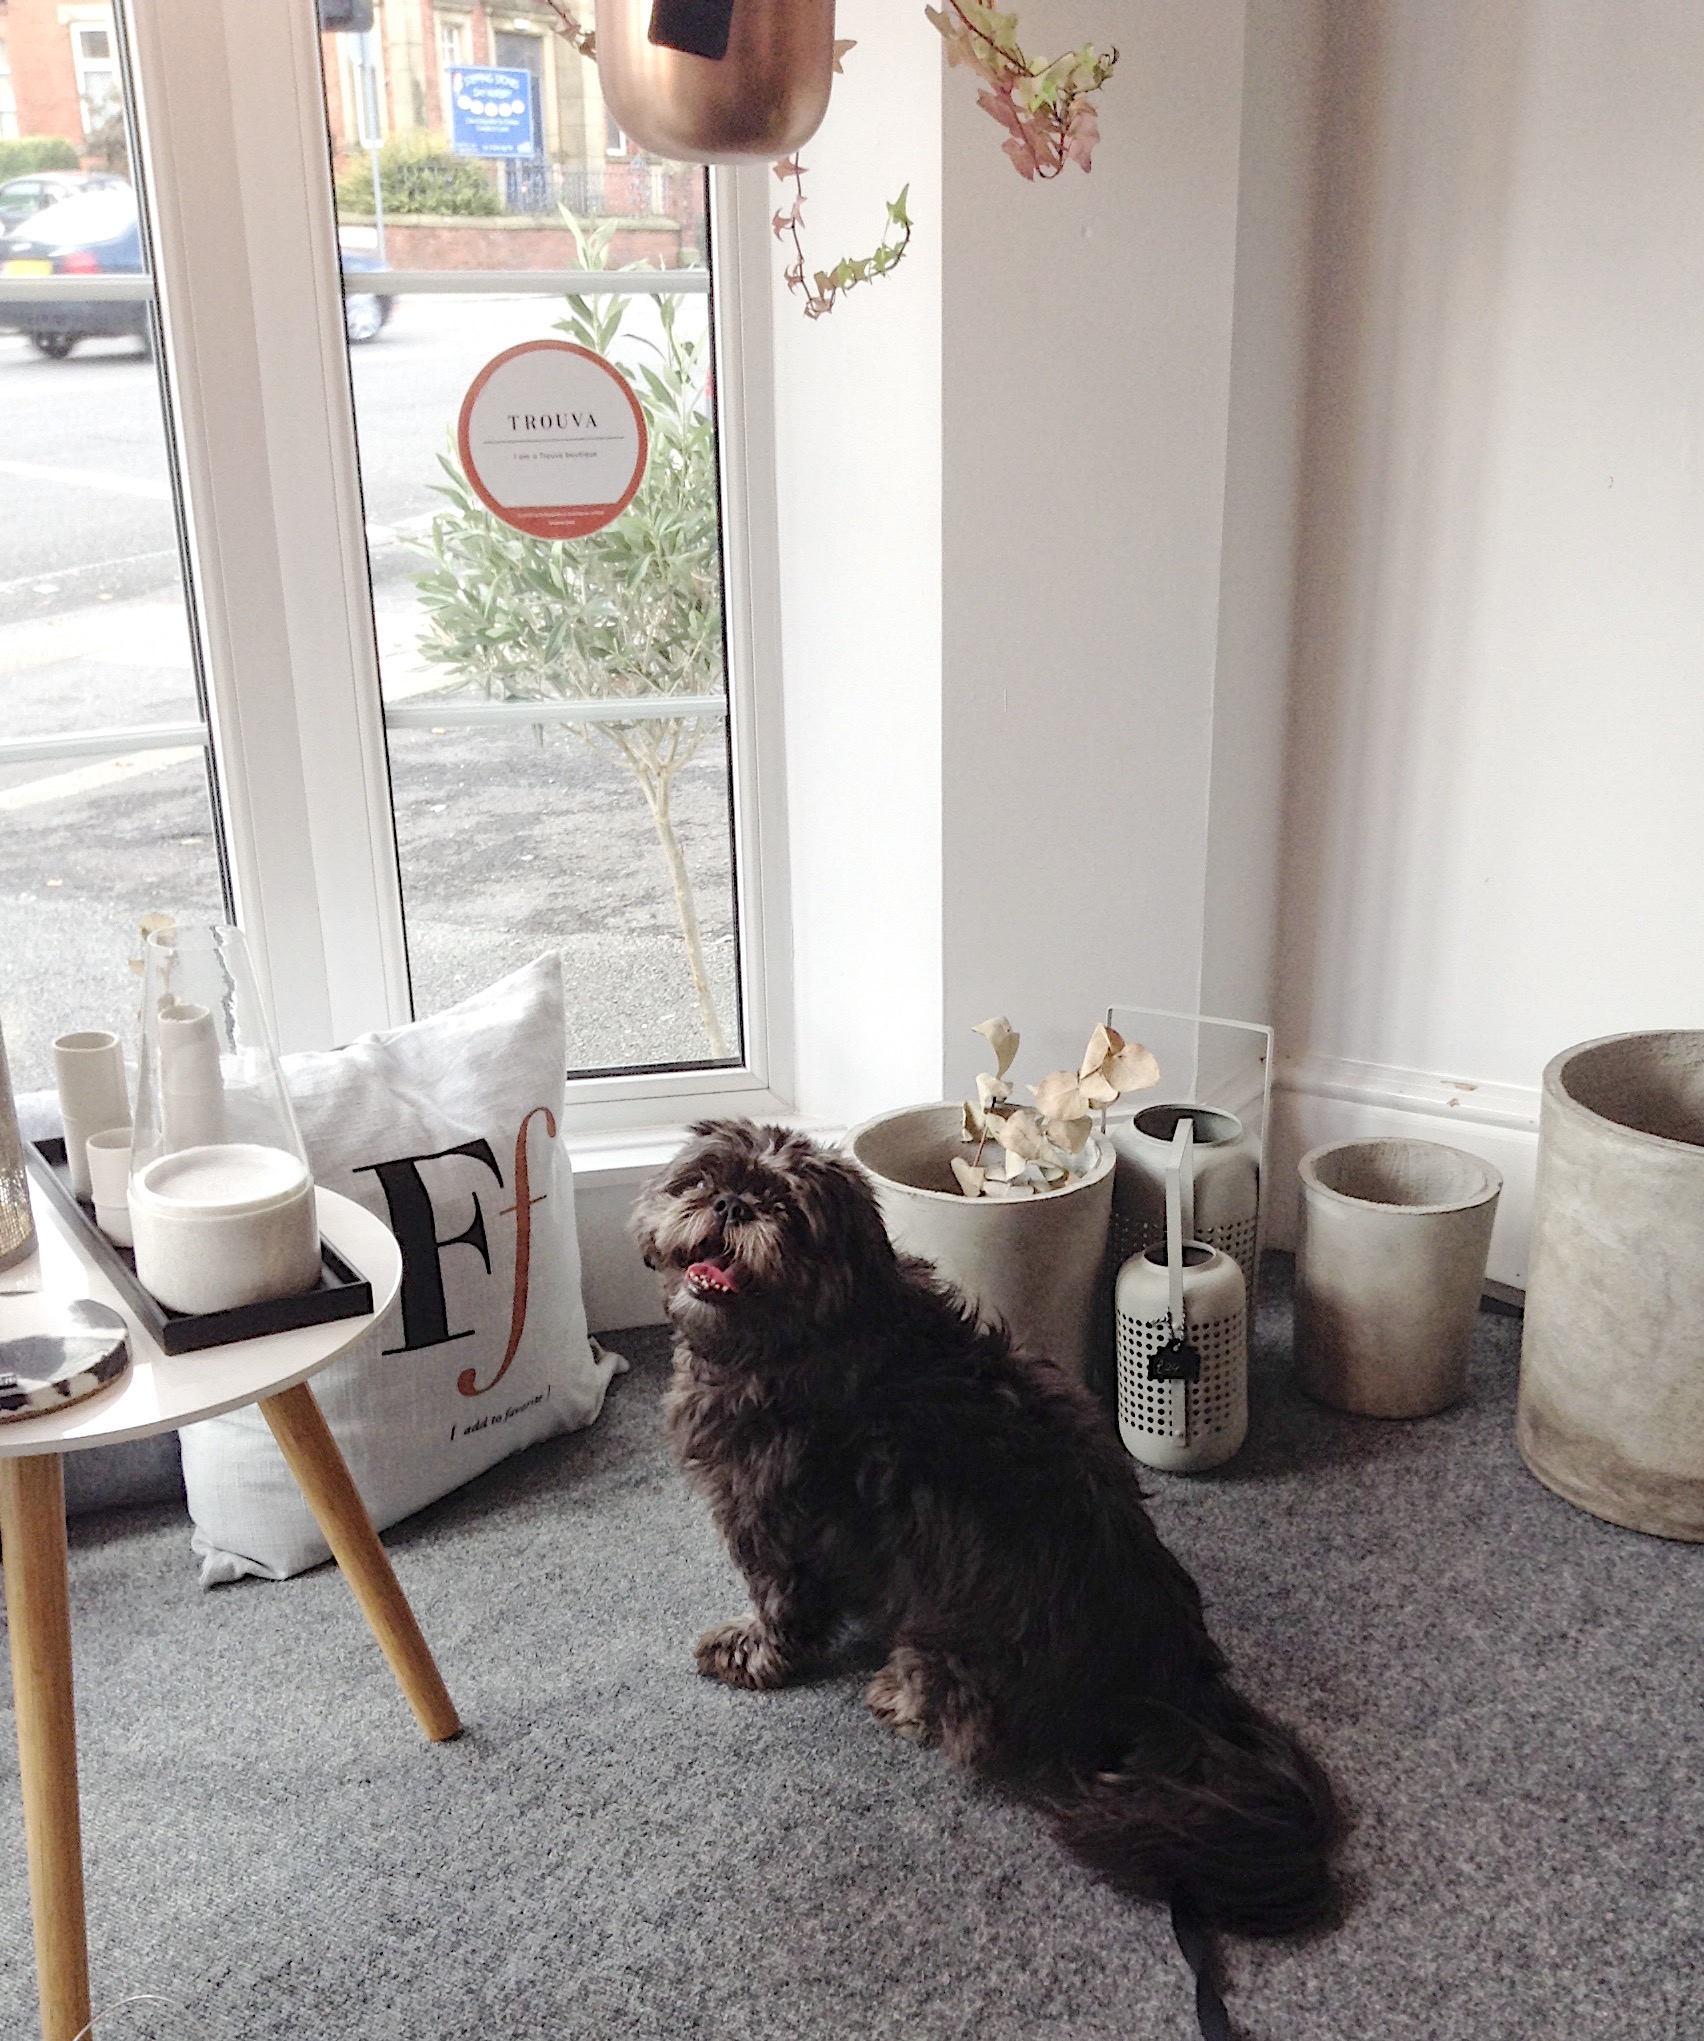 Ozzy the dog in an independent shop